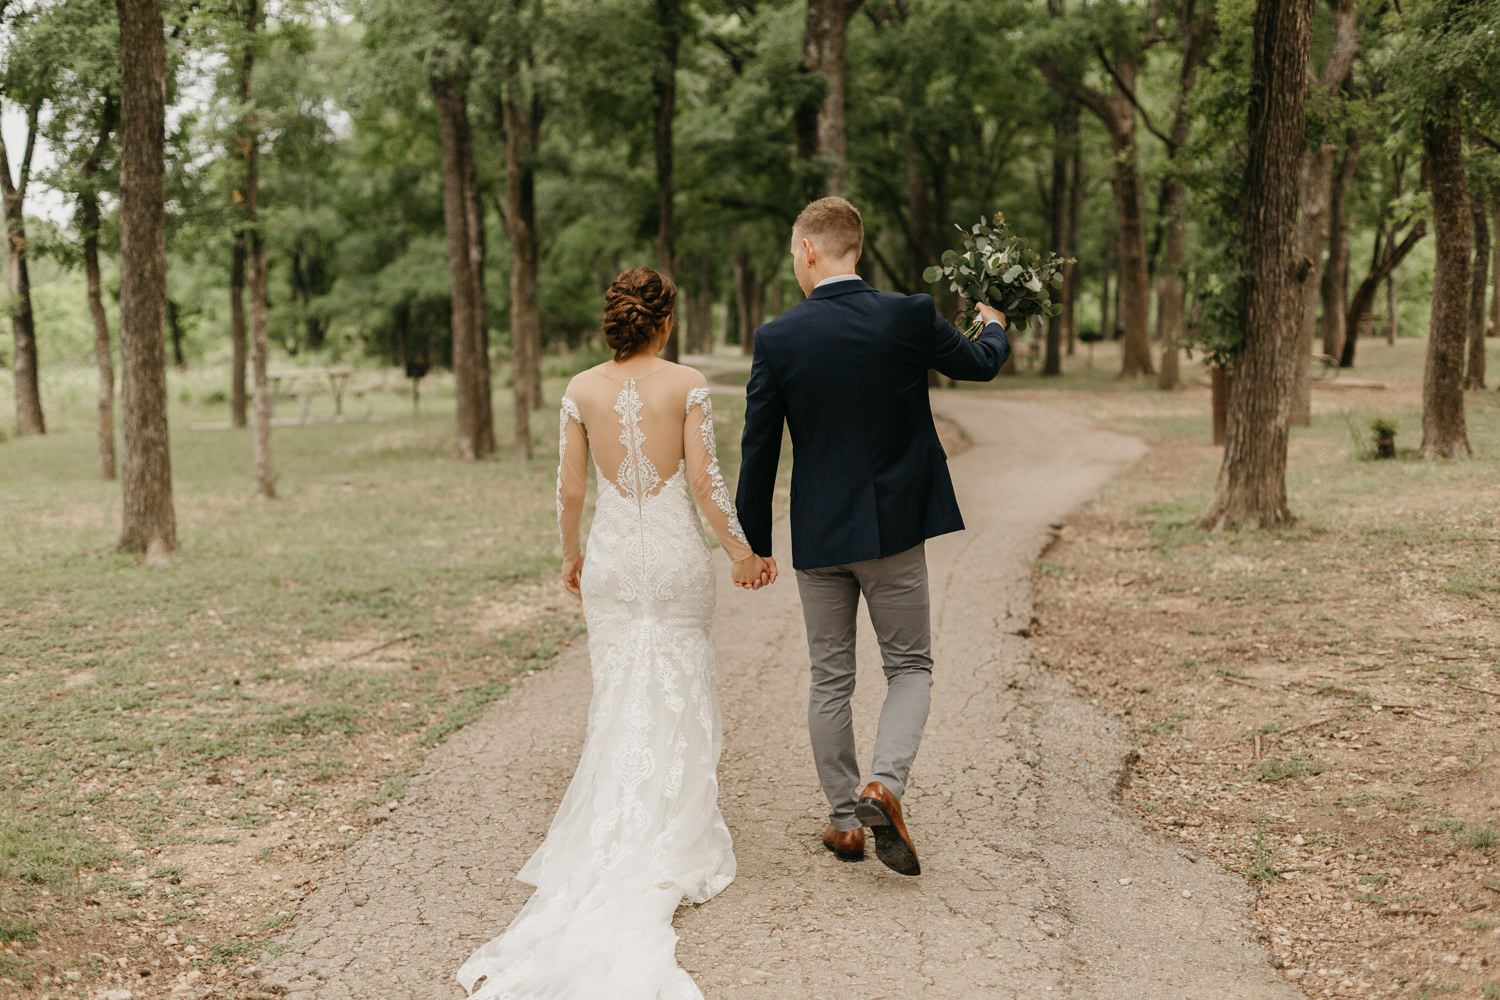 HaileyDylan_Austin Elopement Photographer Austin Wedding Photographer-132.jpg